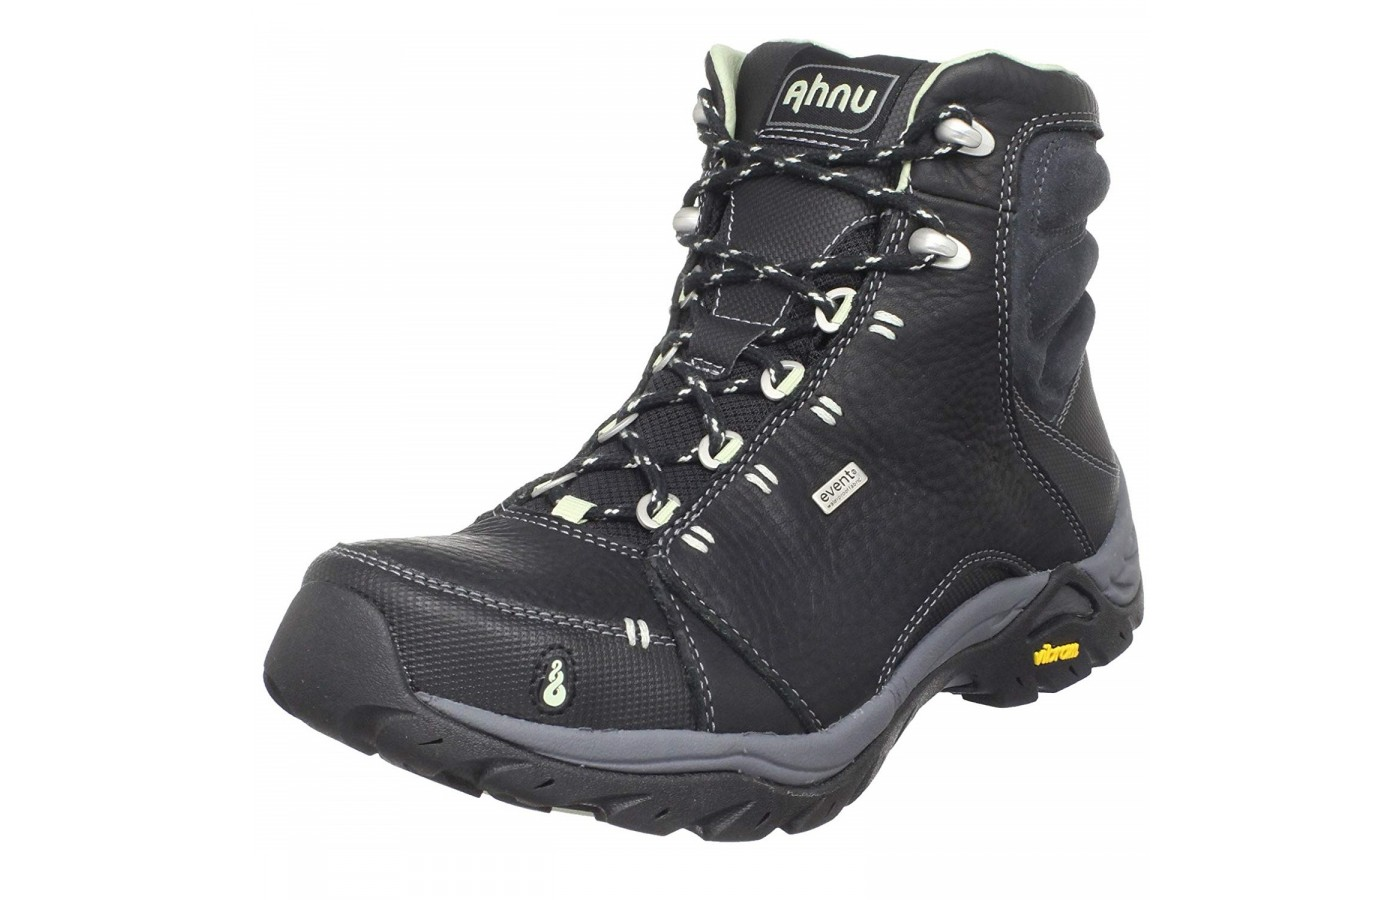 The Ahnu Montara offers waterproof oiled leather uppers for protection from the elements.